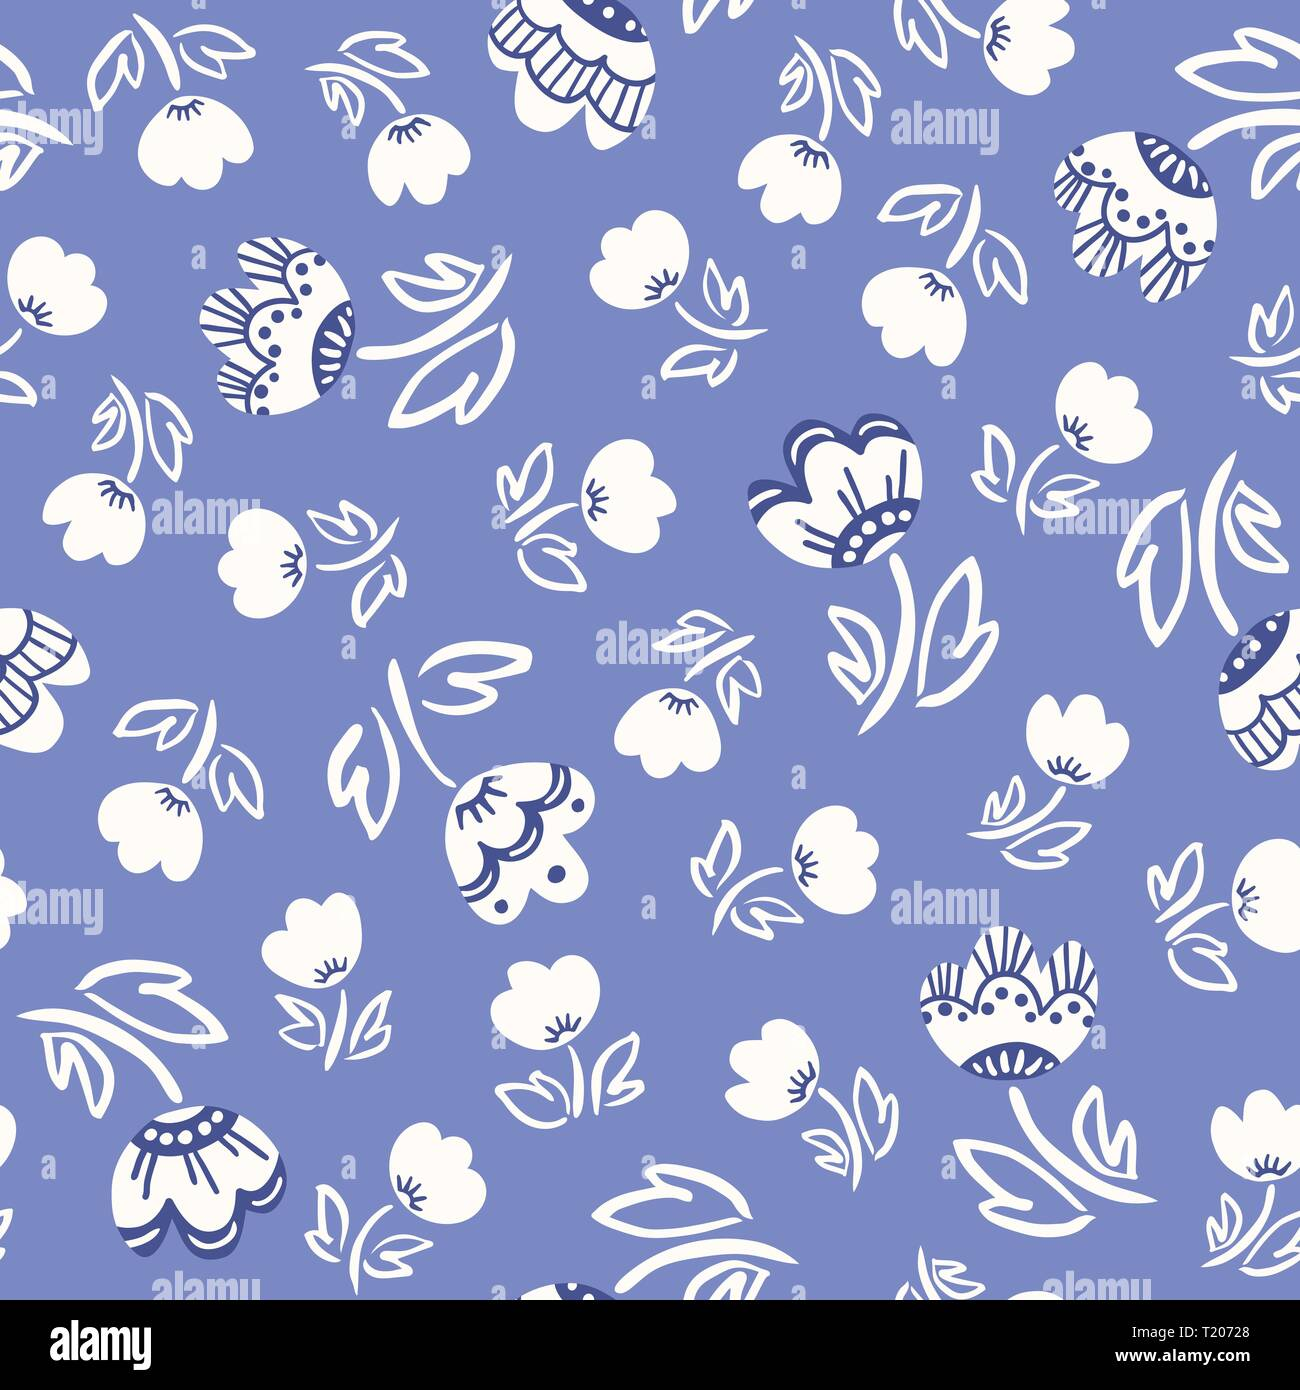 Cute abstract hand-drawn tulip flowers on coral background vector seamless pattern. Whimsical delft floral print. Simplistic ditsy blooms. Scandinavia - Stock Image